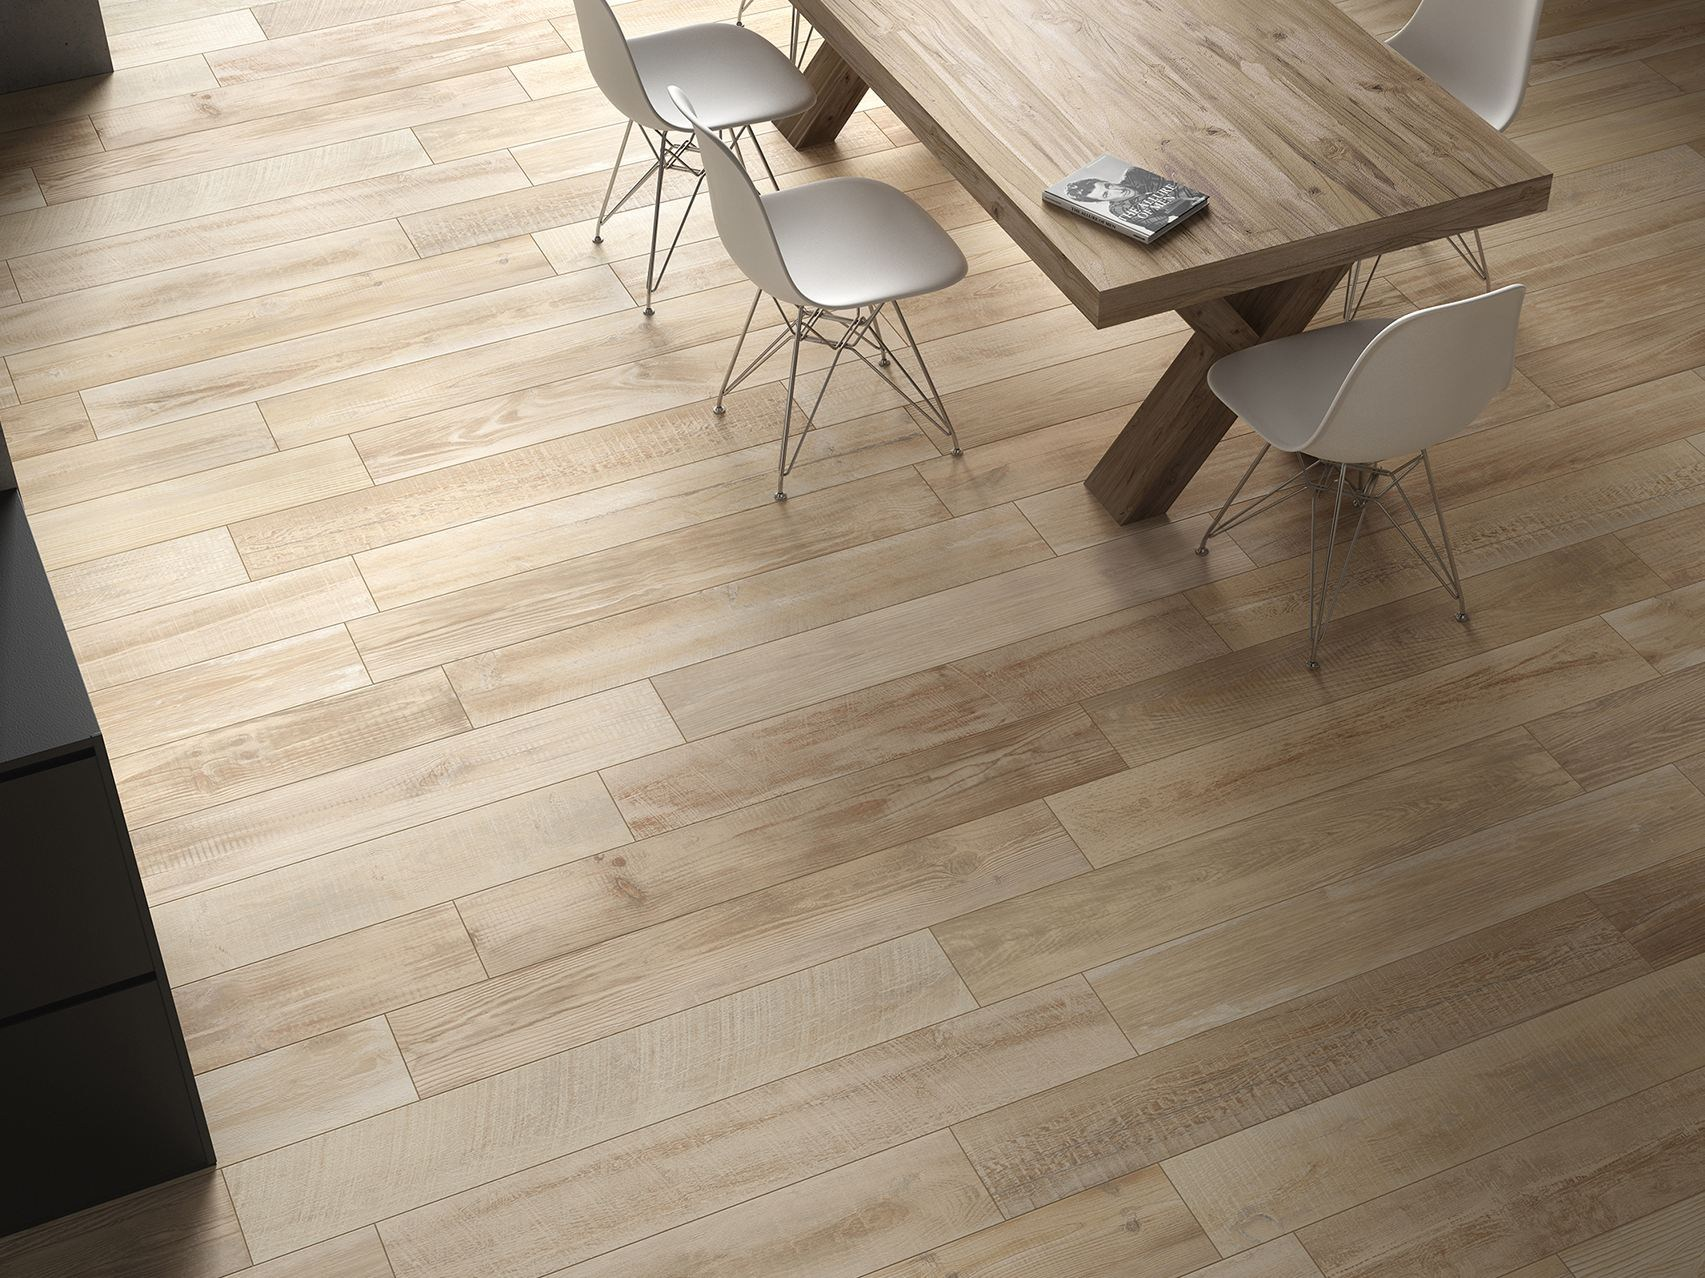 CROSS WOOD Flooring Cross Wood Collection by Panaria Ceramica